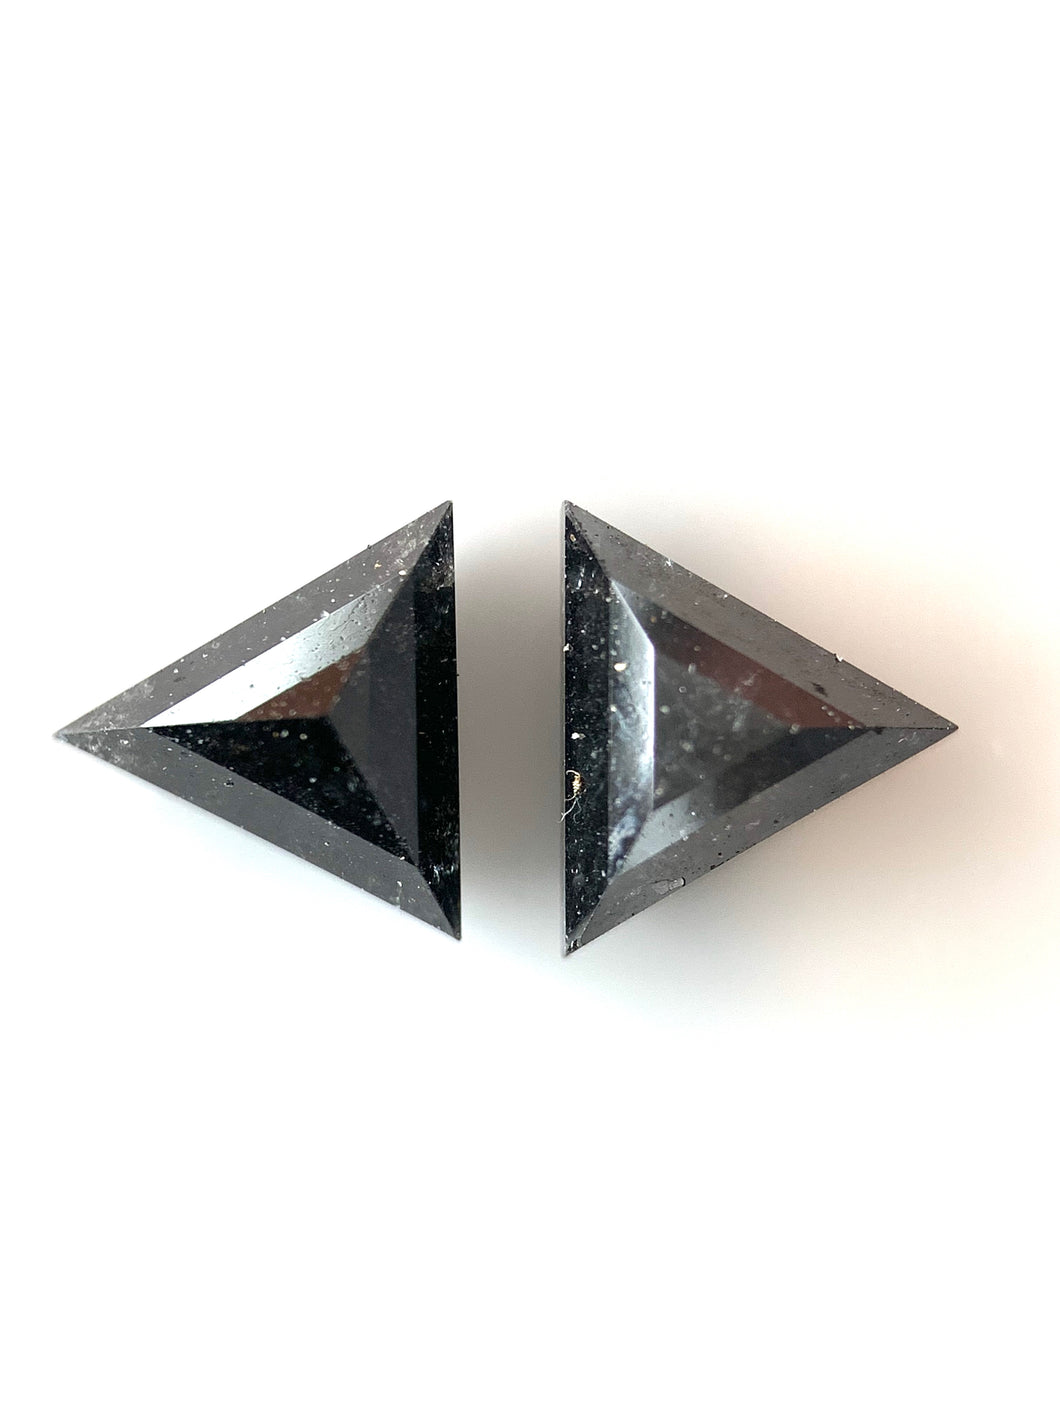 2=.99ct Triangle Cut Natural Black Salt and Pepper Diamonds